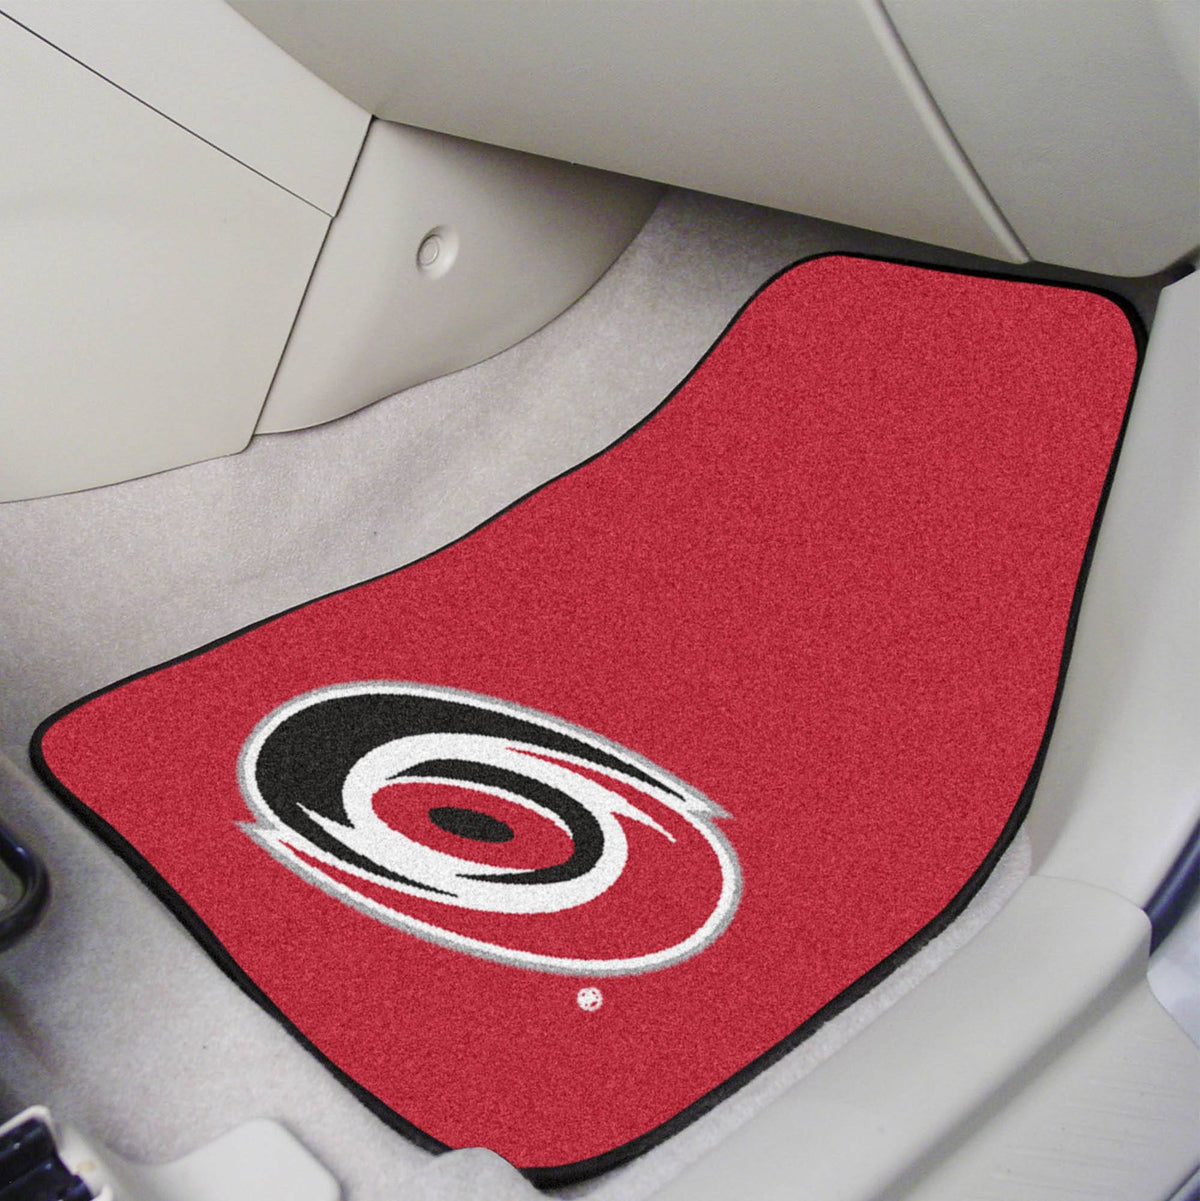 NHL - Carpet Car Mat, 2-Piece Set NHL Mats, Front Car Mats, 2-pc Carpet Car Mat Set, NHL, Auto Fan Mats Carolina Hurricanes